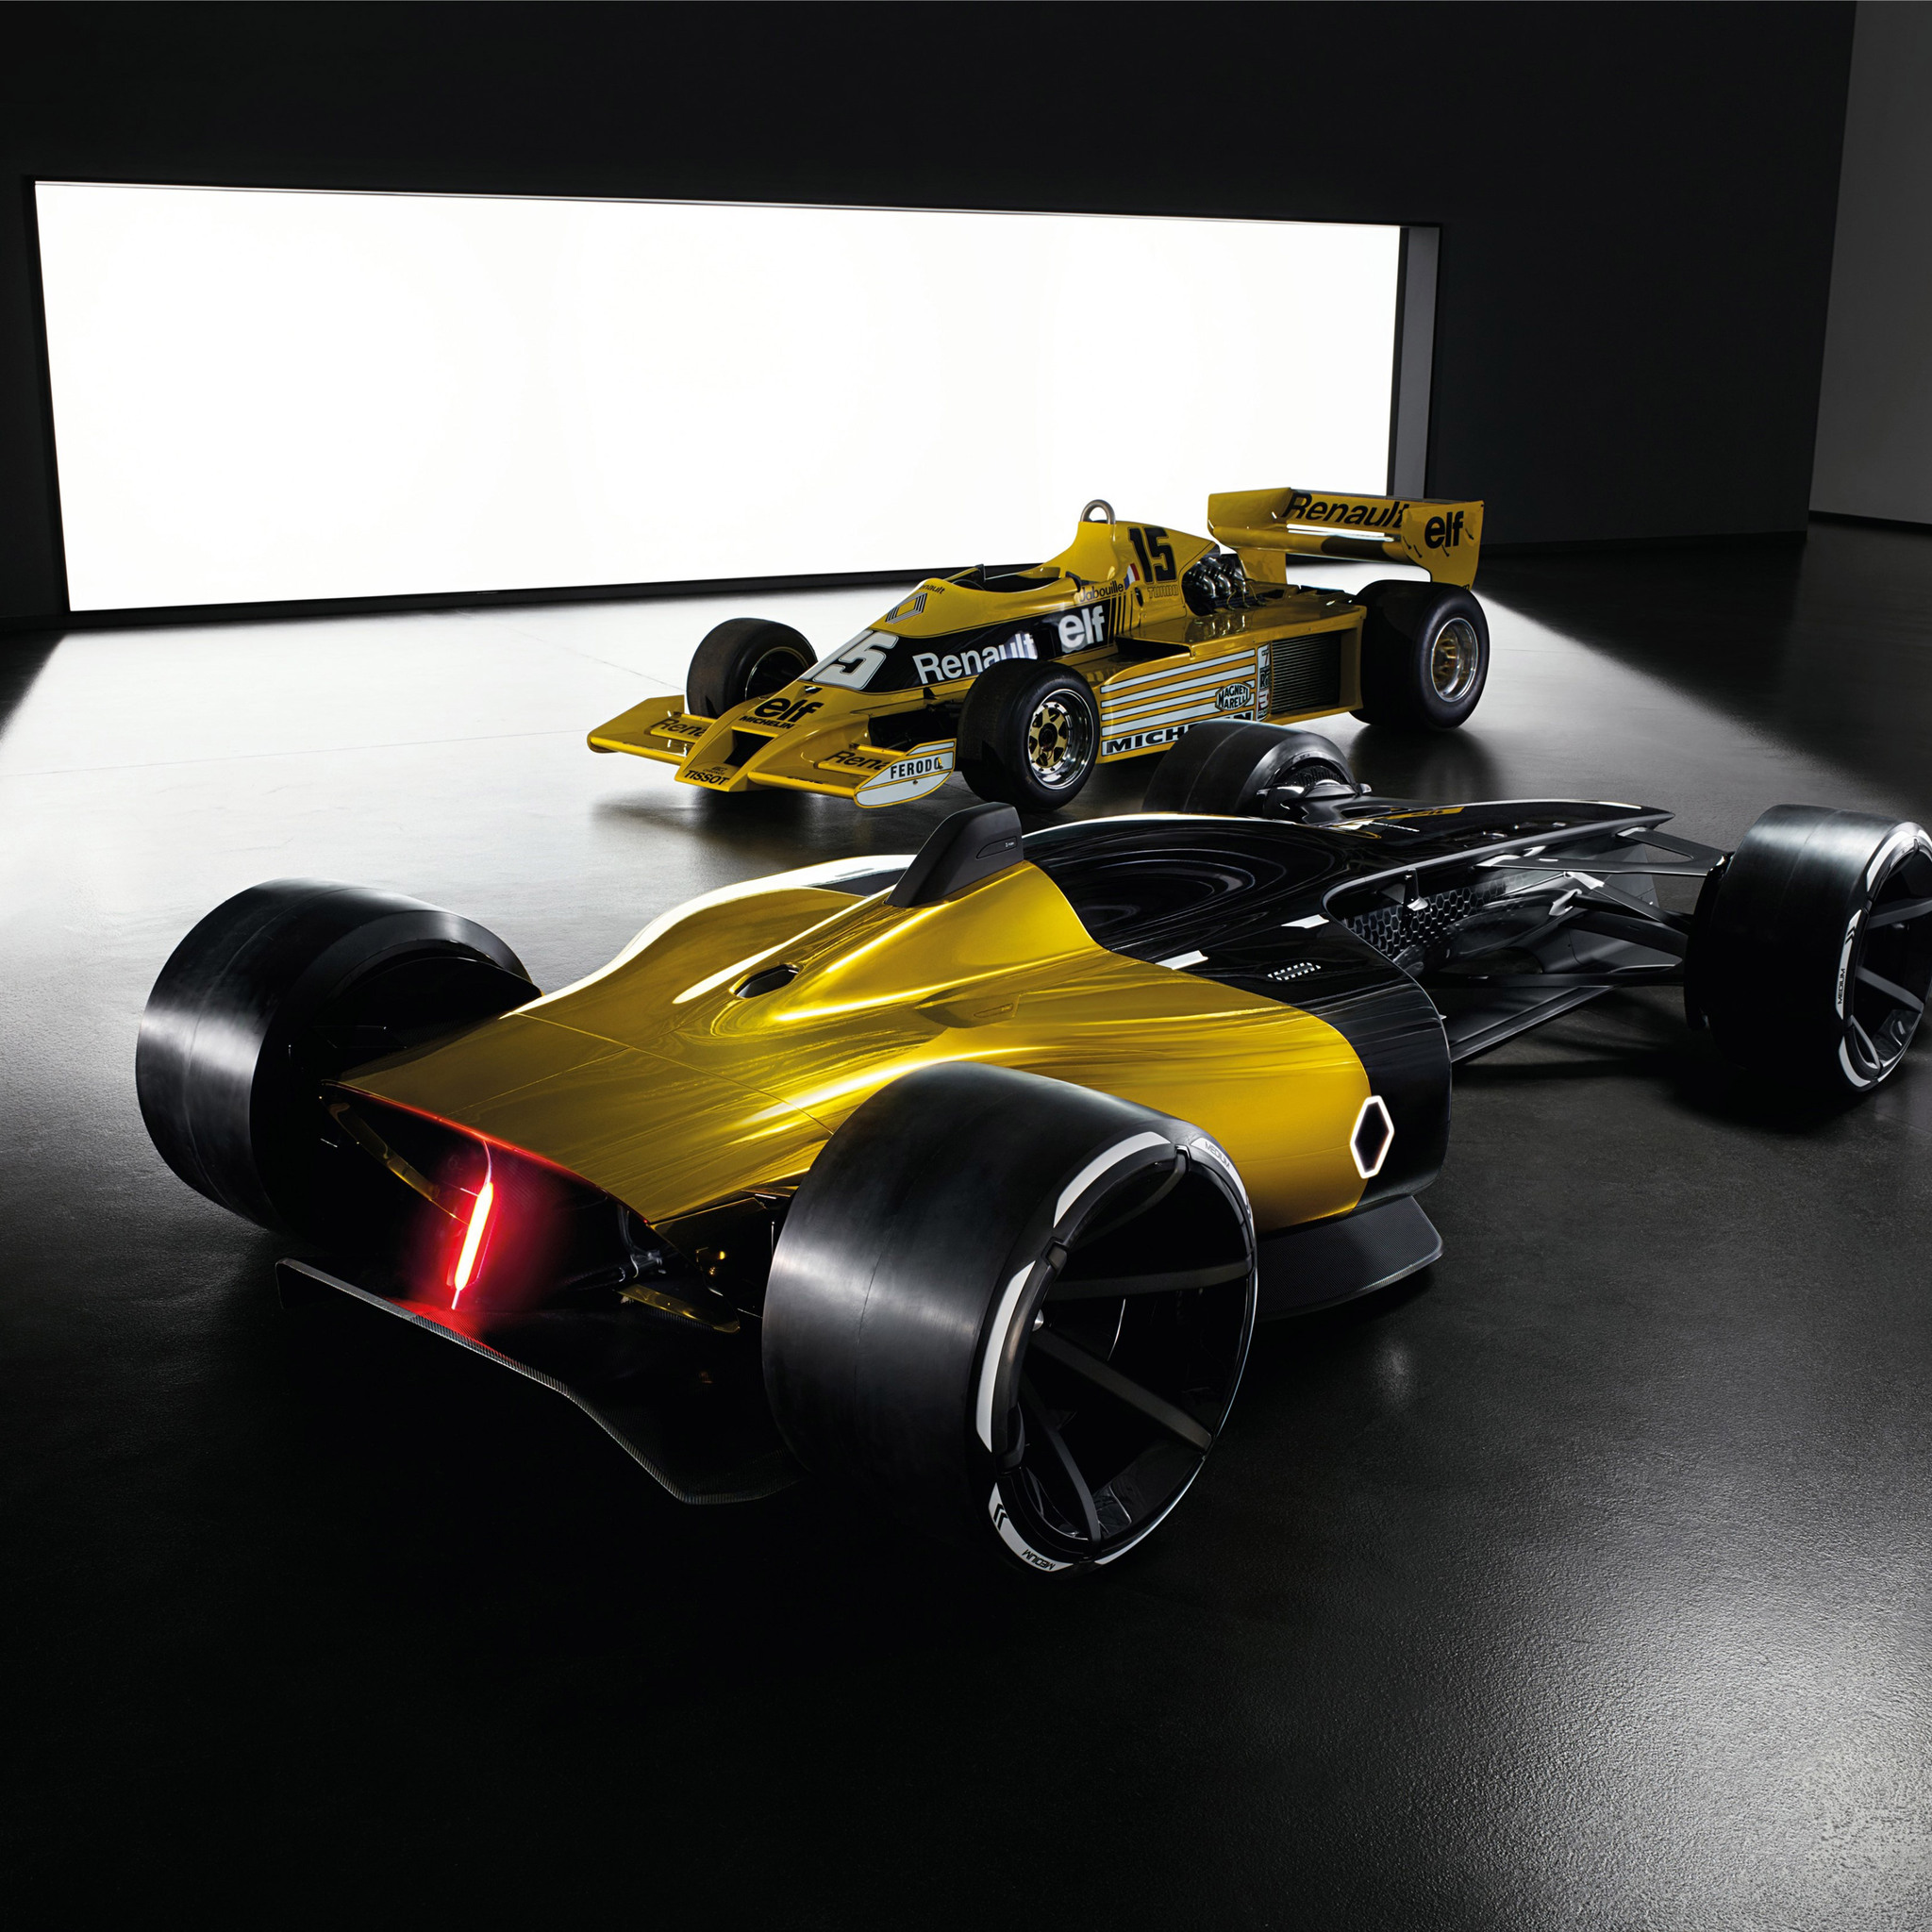 renault-rs-2027-vision-concept-2017-ad.jpg